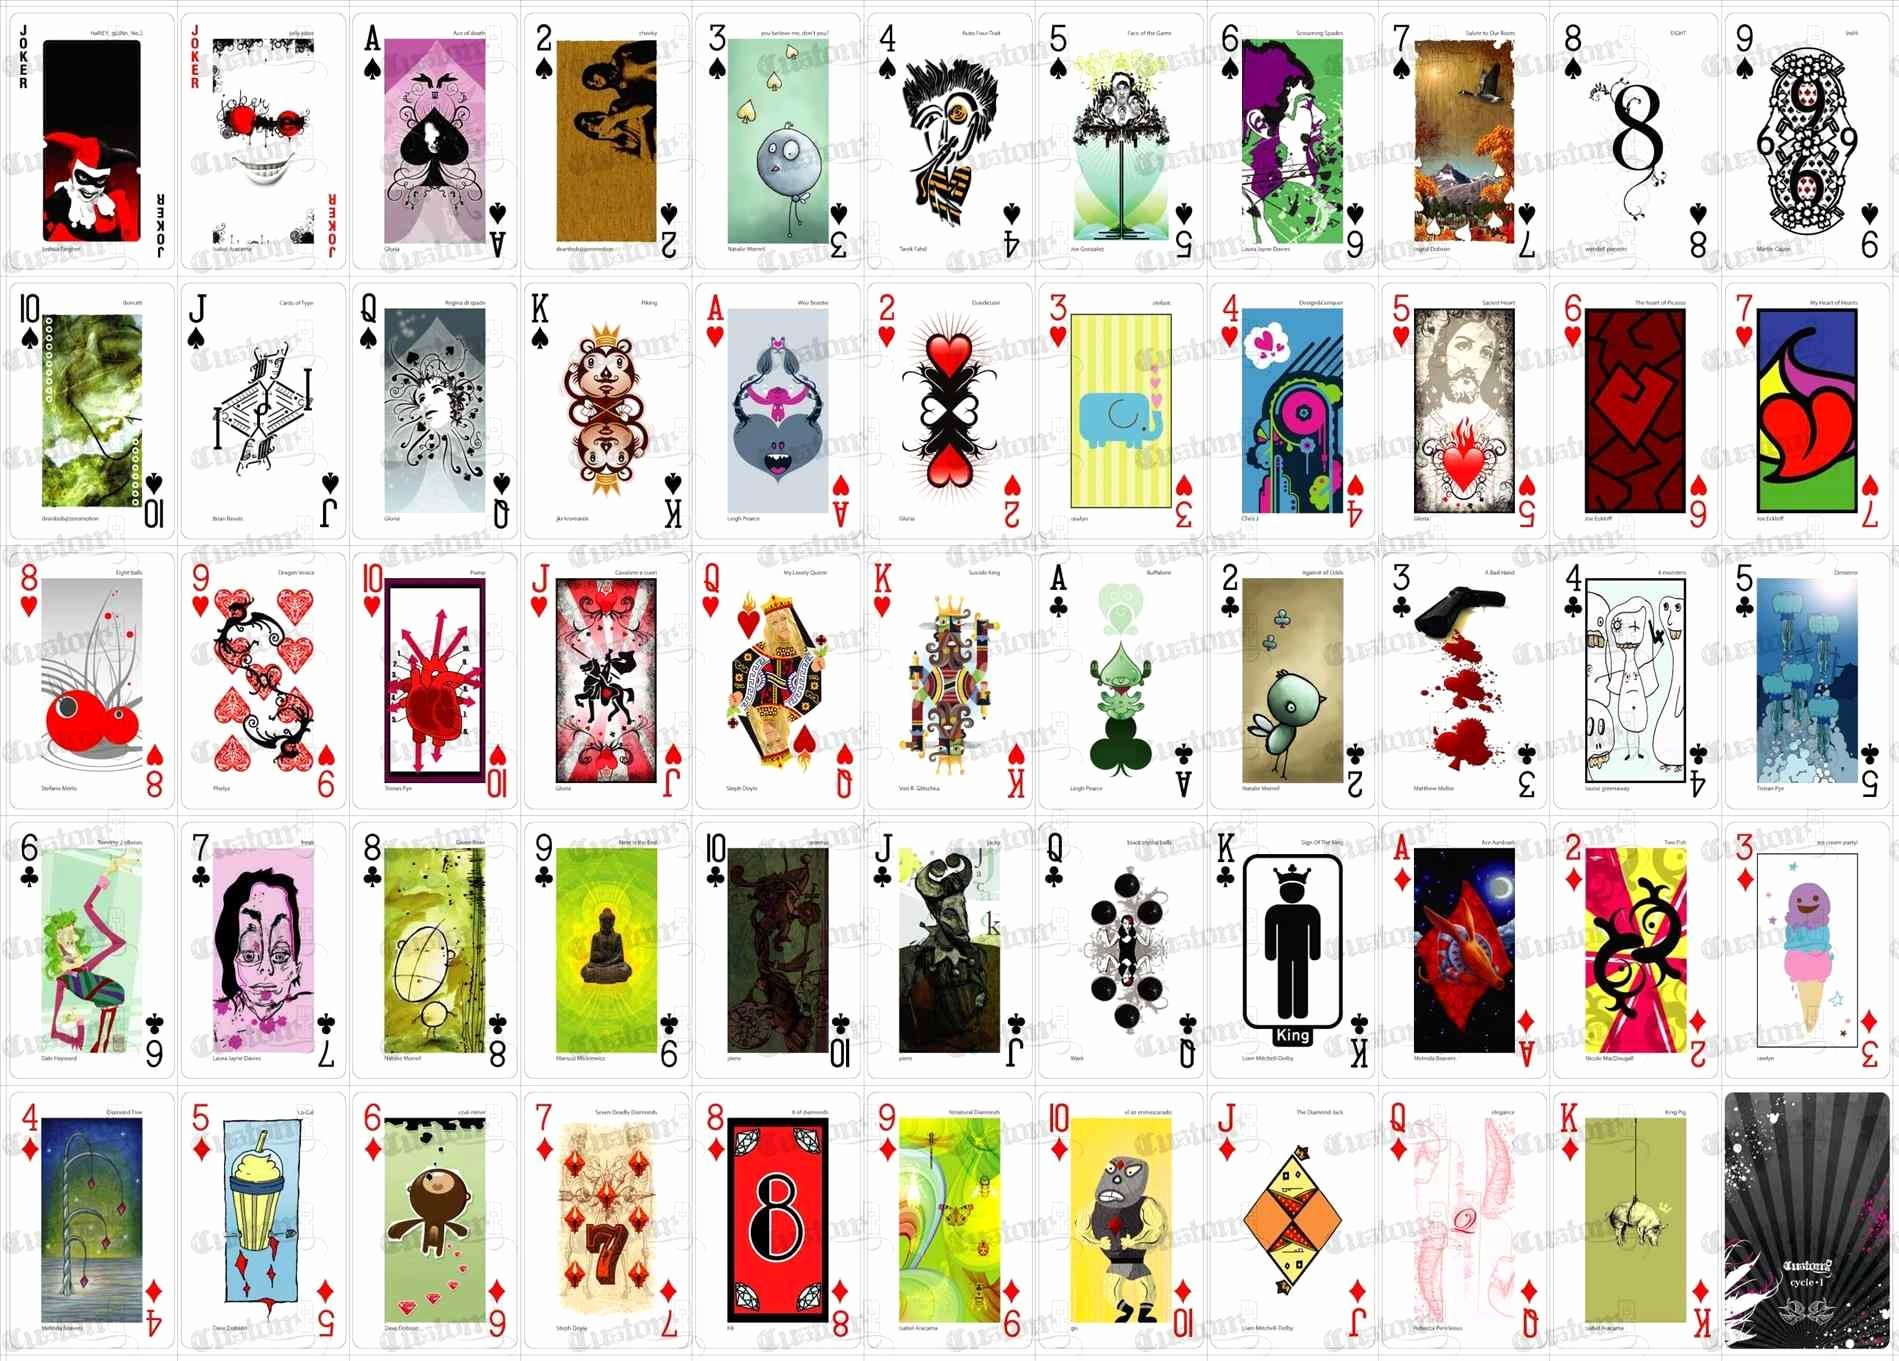 Playing Card Design Template Elegant Cool Card Deck Designs Arch Dsgn